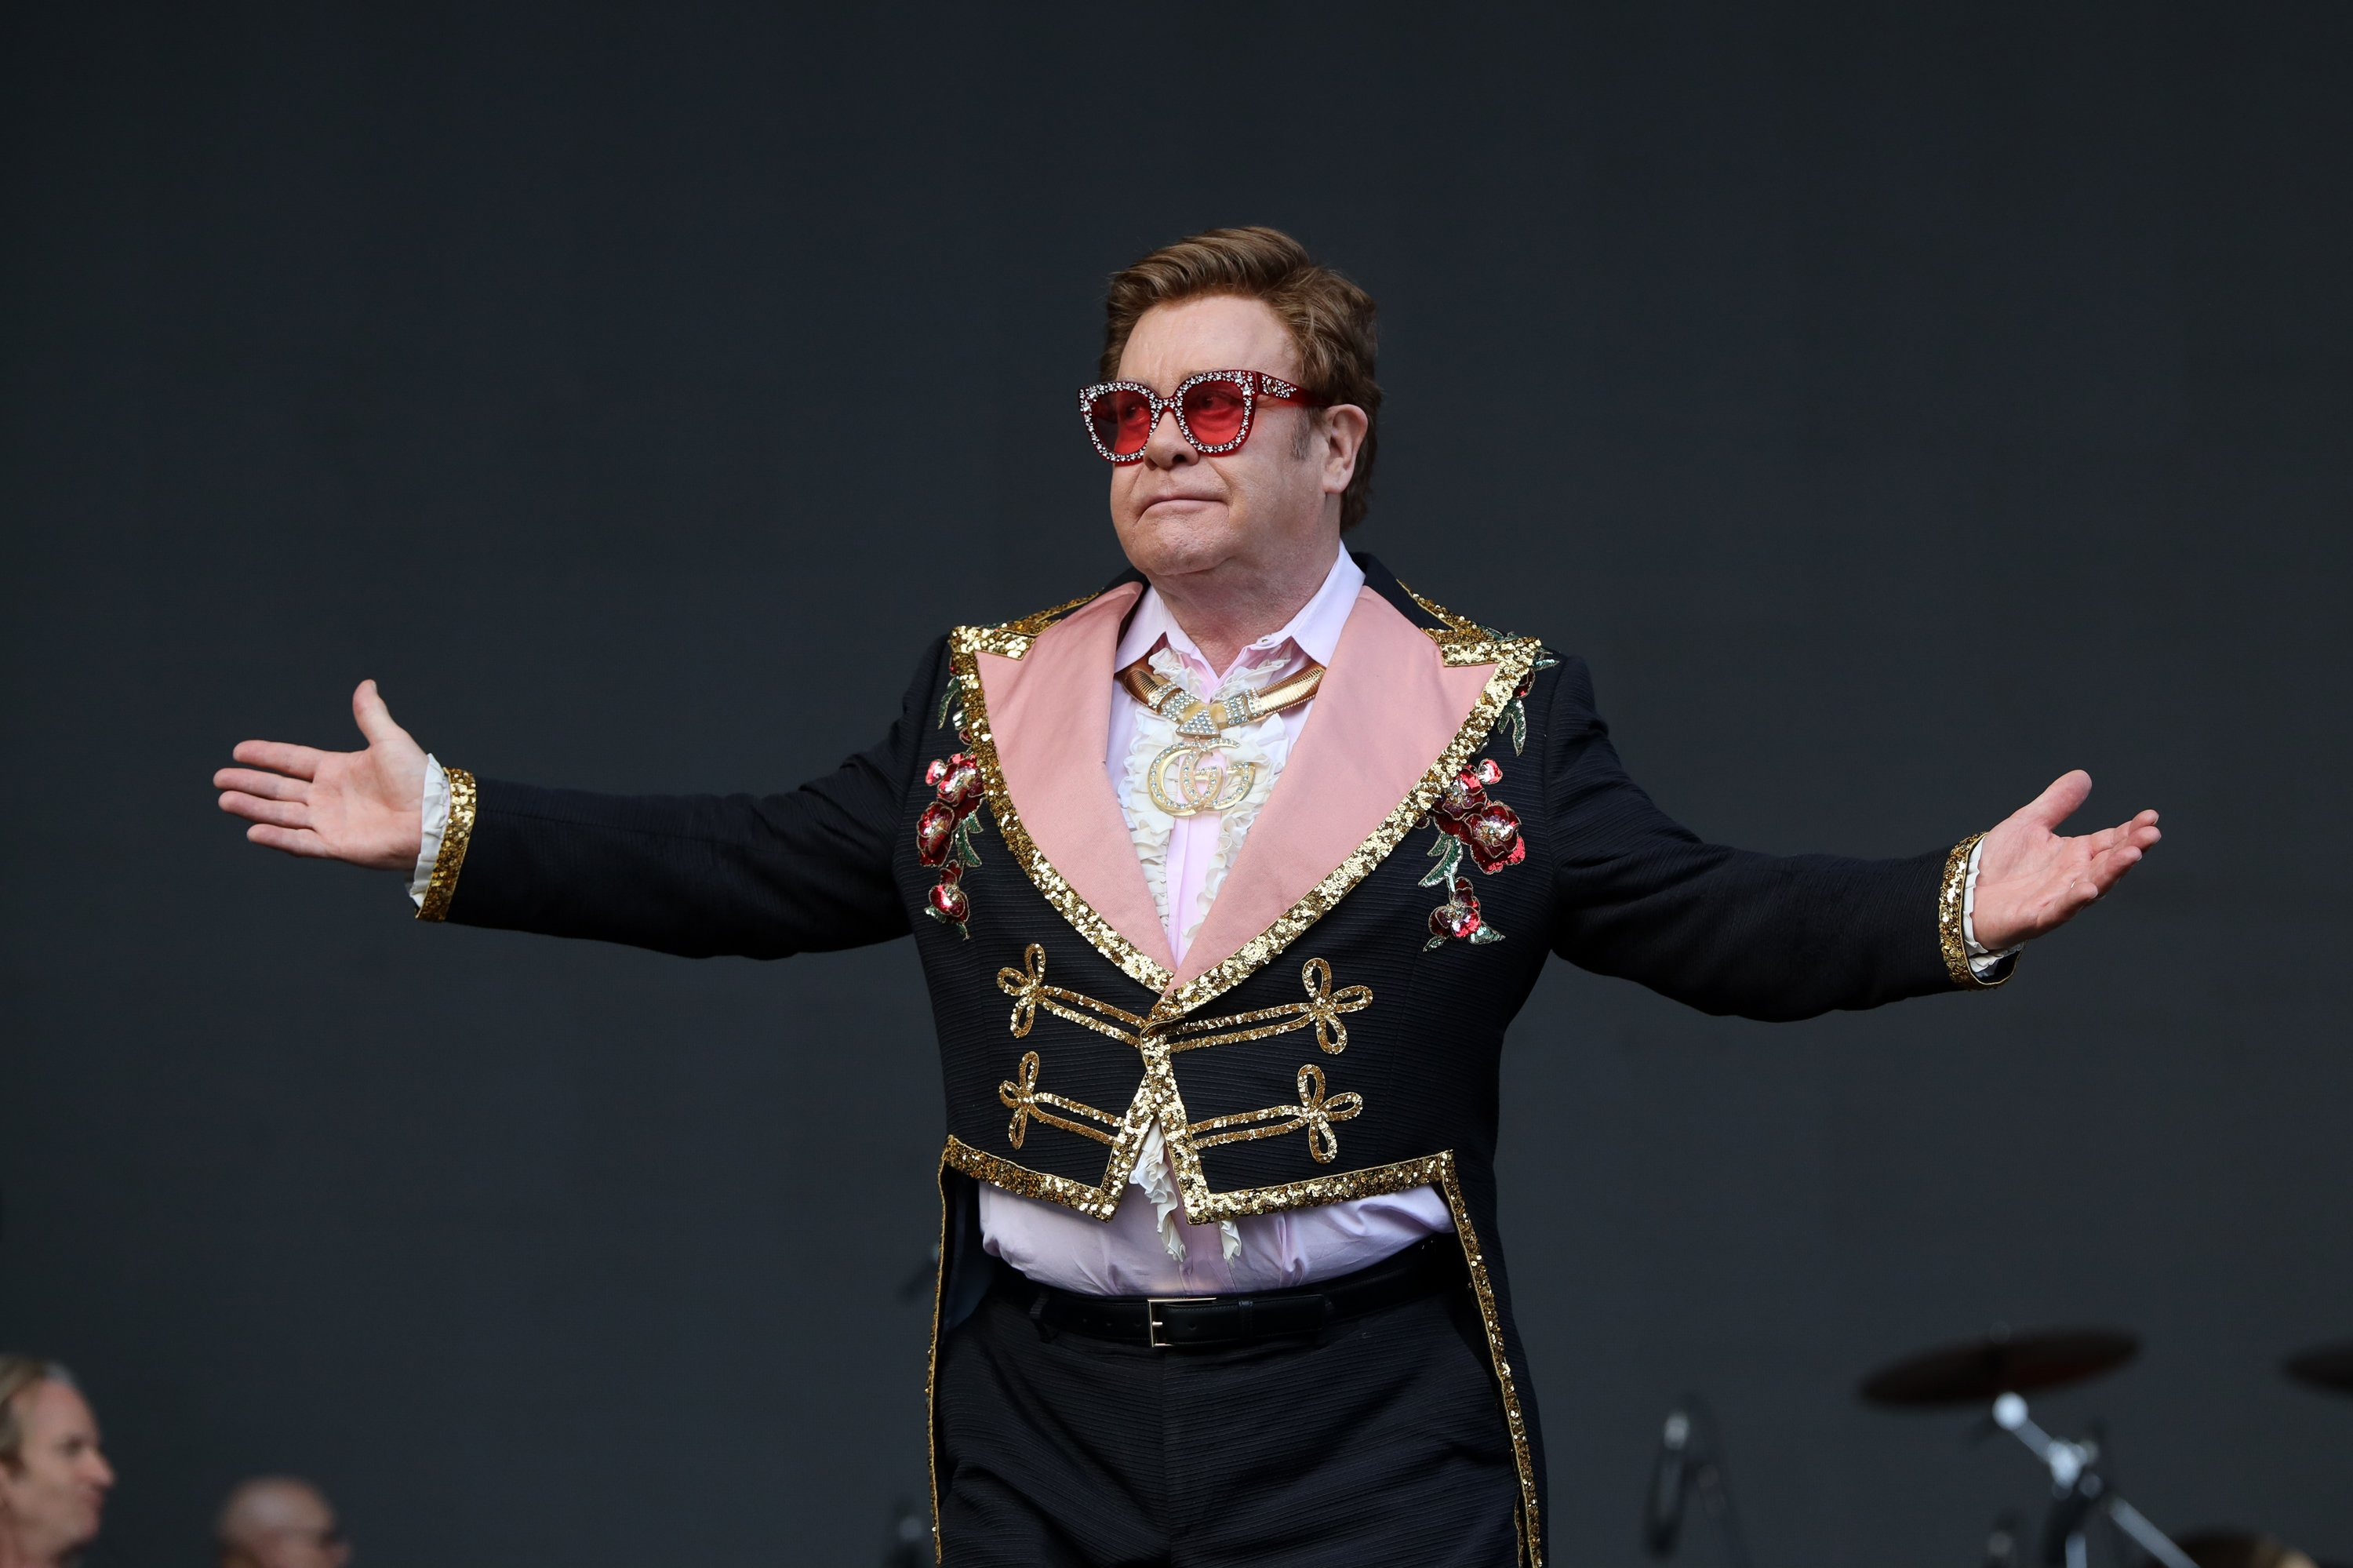 Sir Elton John apoligizing to this fans for cutting the show short at Mt Smart Stadium on February 16, 2020 in Auckland, New Zealand   Photo: Dave Simpson/WireImage